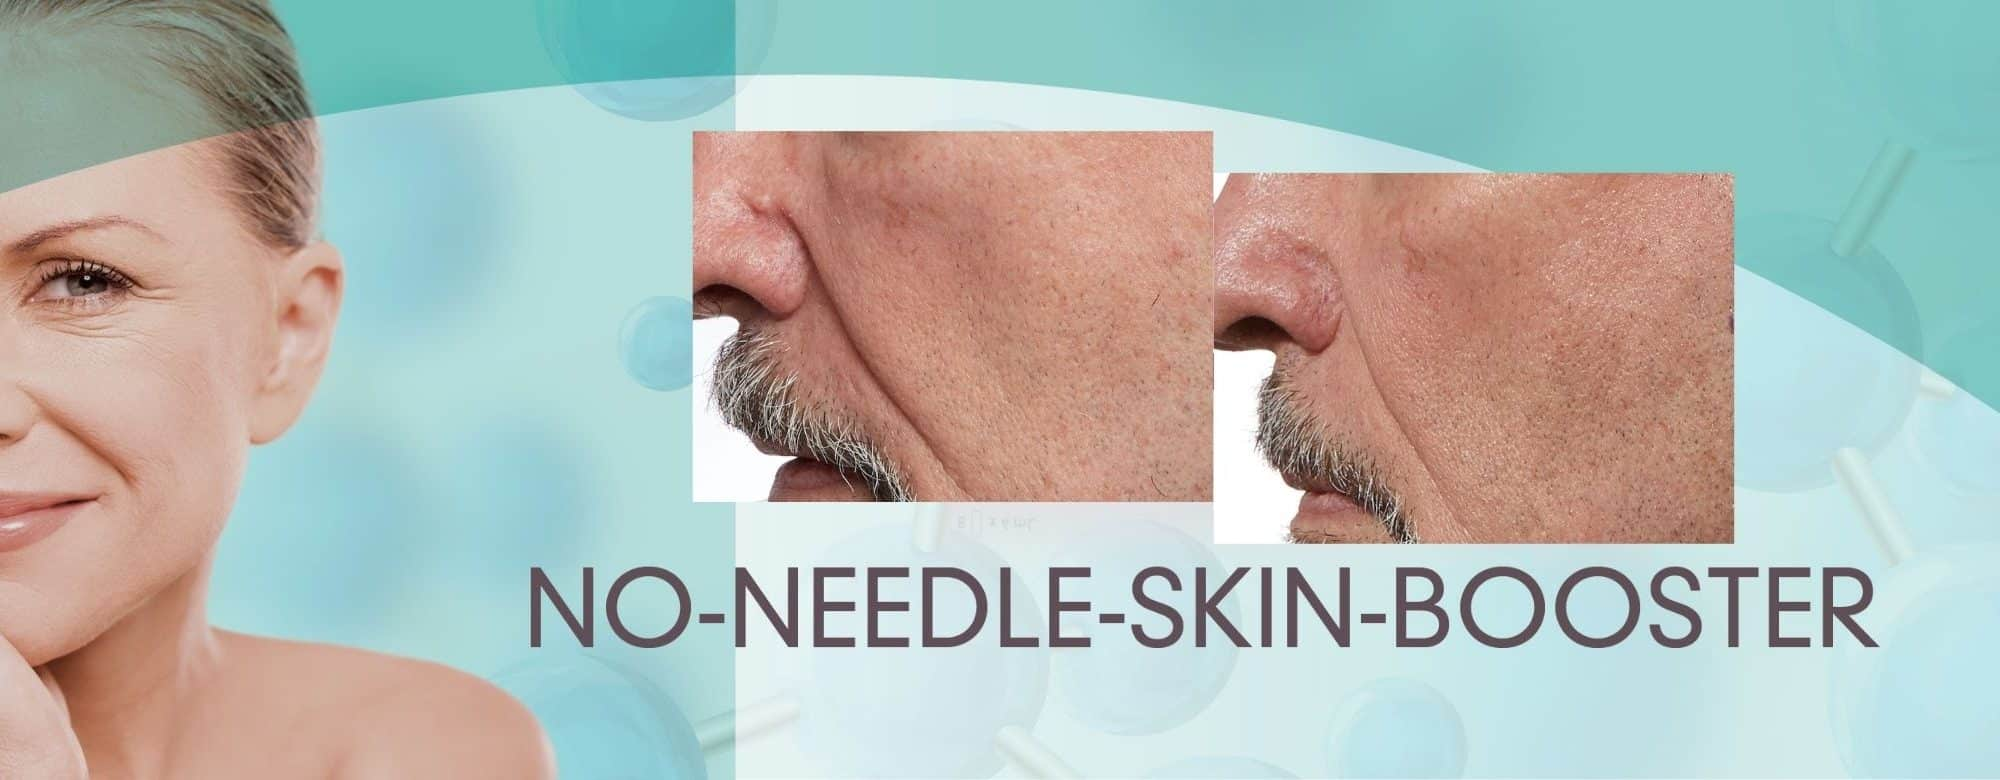 no needle skin booster